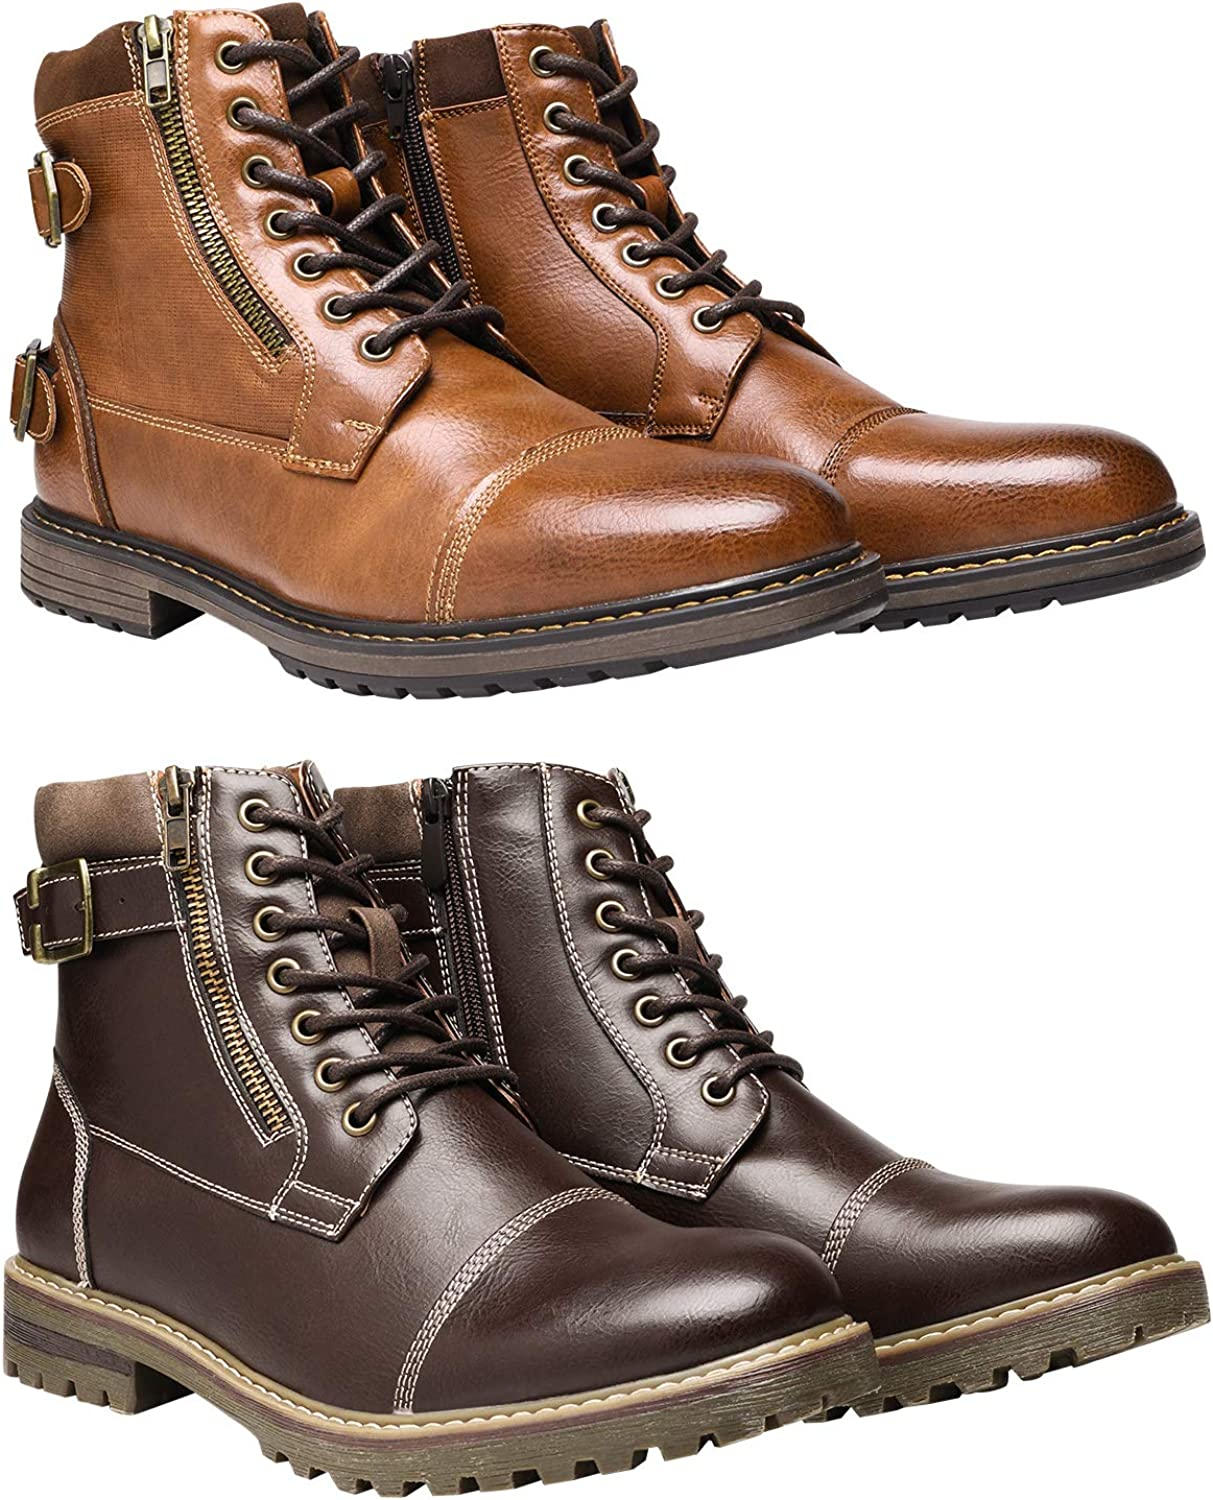 Bruno Marc Men's Motorcycle Boots Bundle with Men's Oxford Boots Size 12